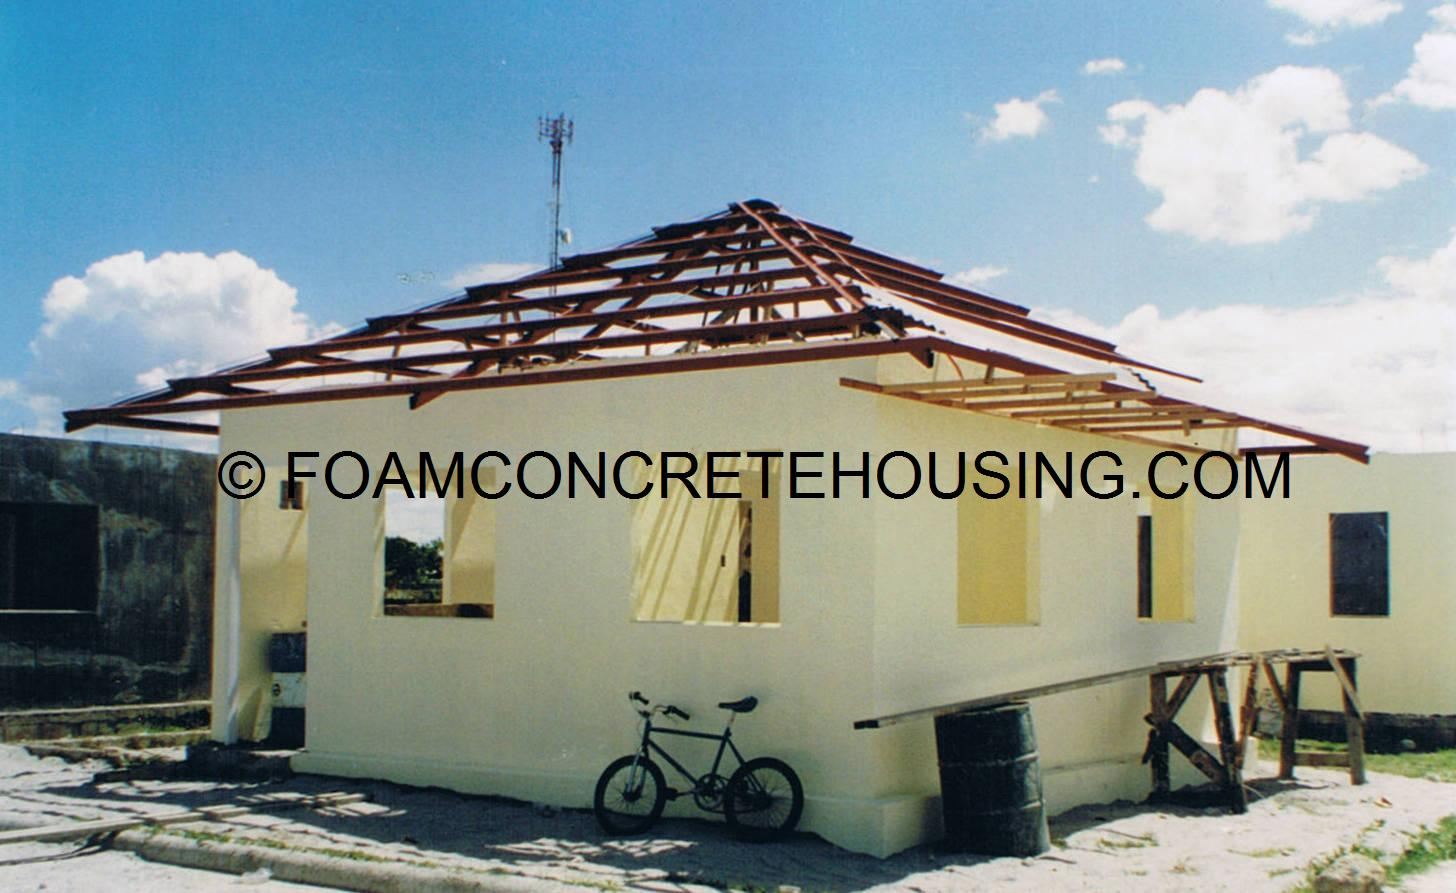 B94 Foam Concrete Housing